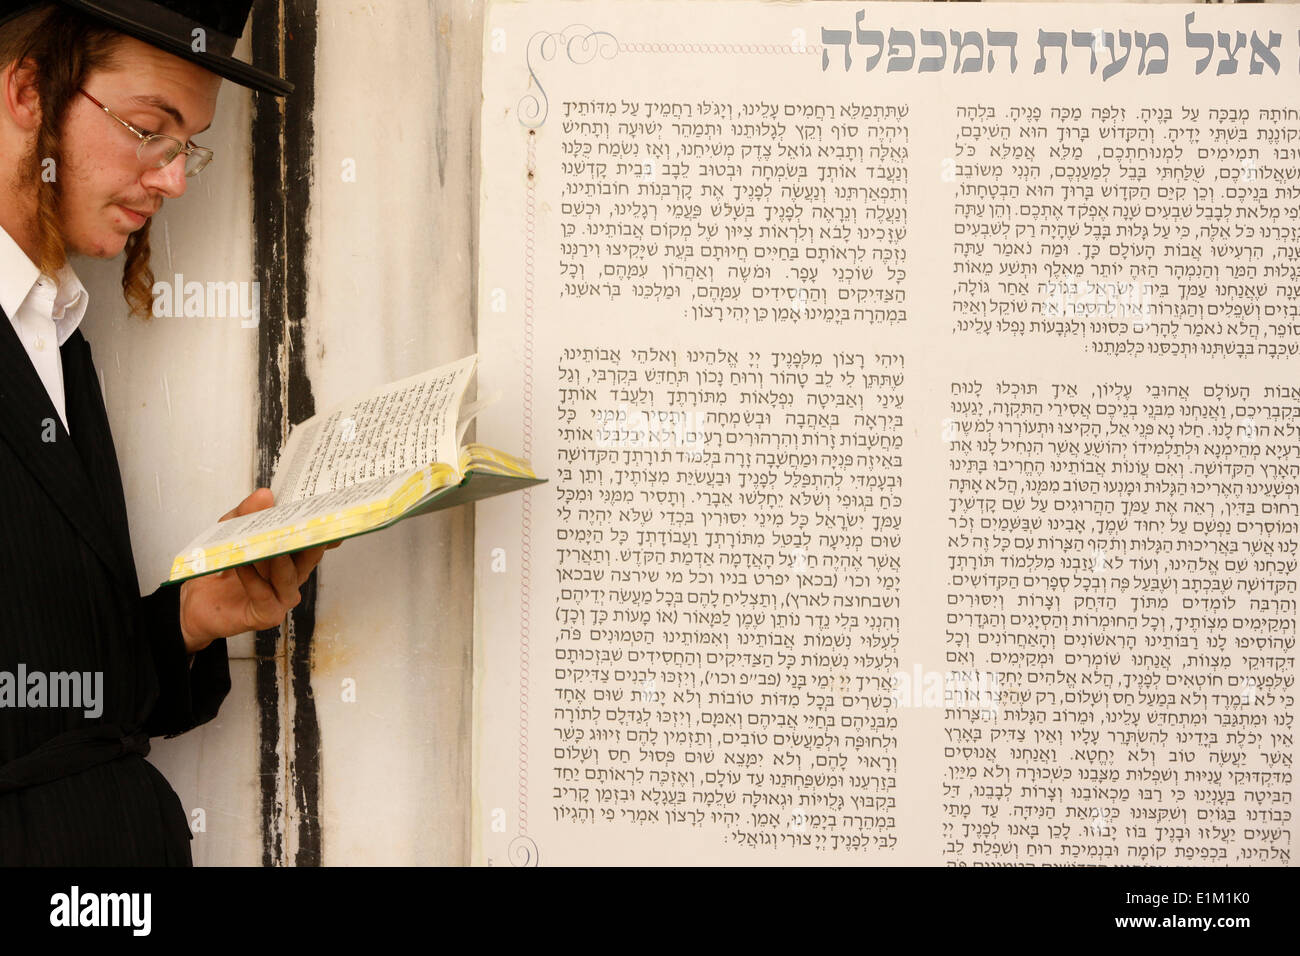 Orthodox Jew at the Synagogue in Hebron, part of the religious site known to both Jewish and Muslim worshippers as the Tomb of t - Stock Image